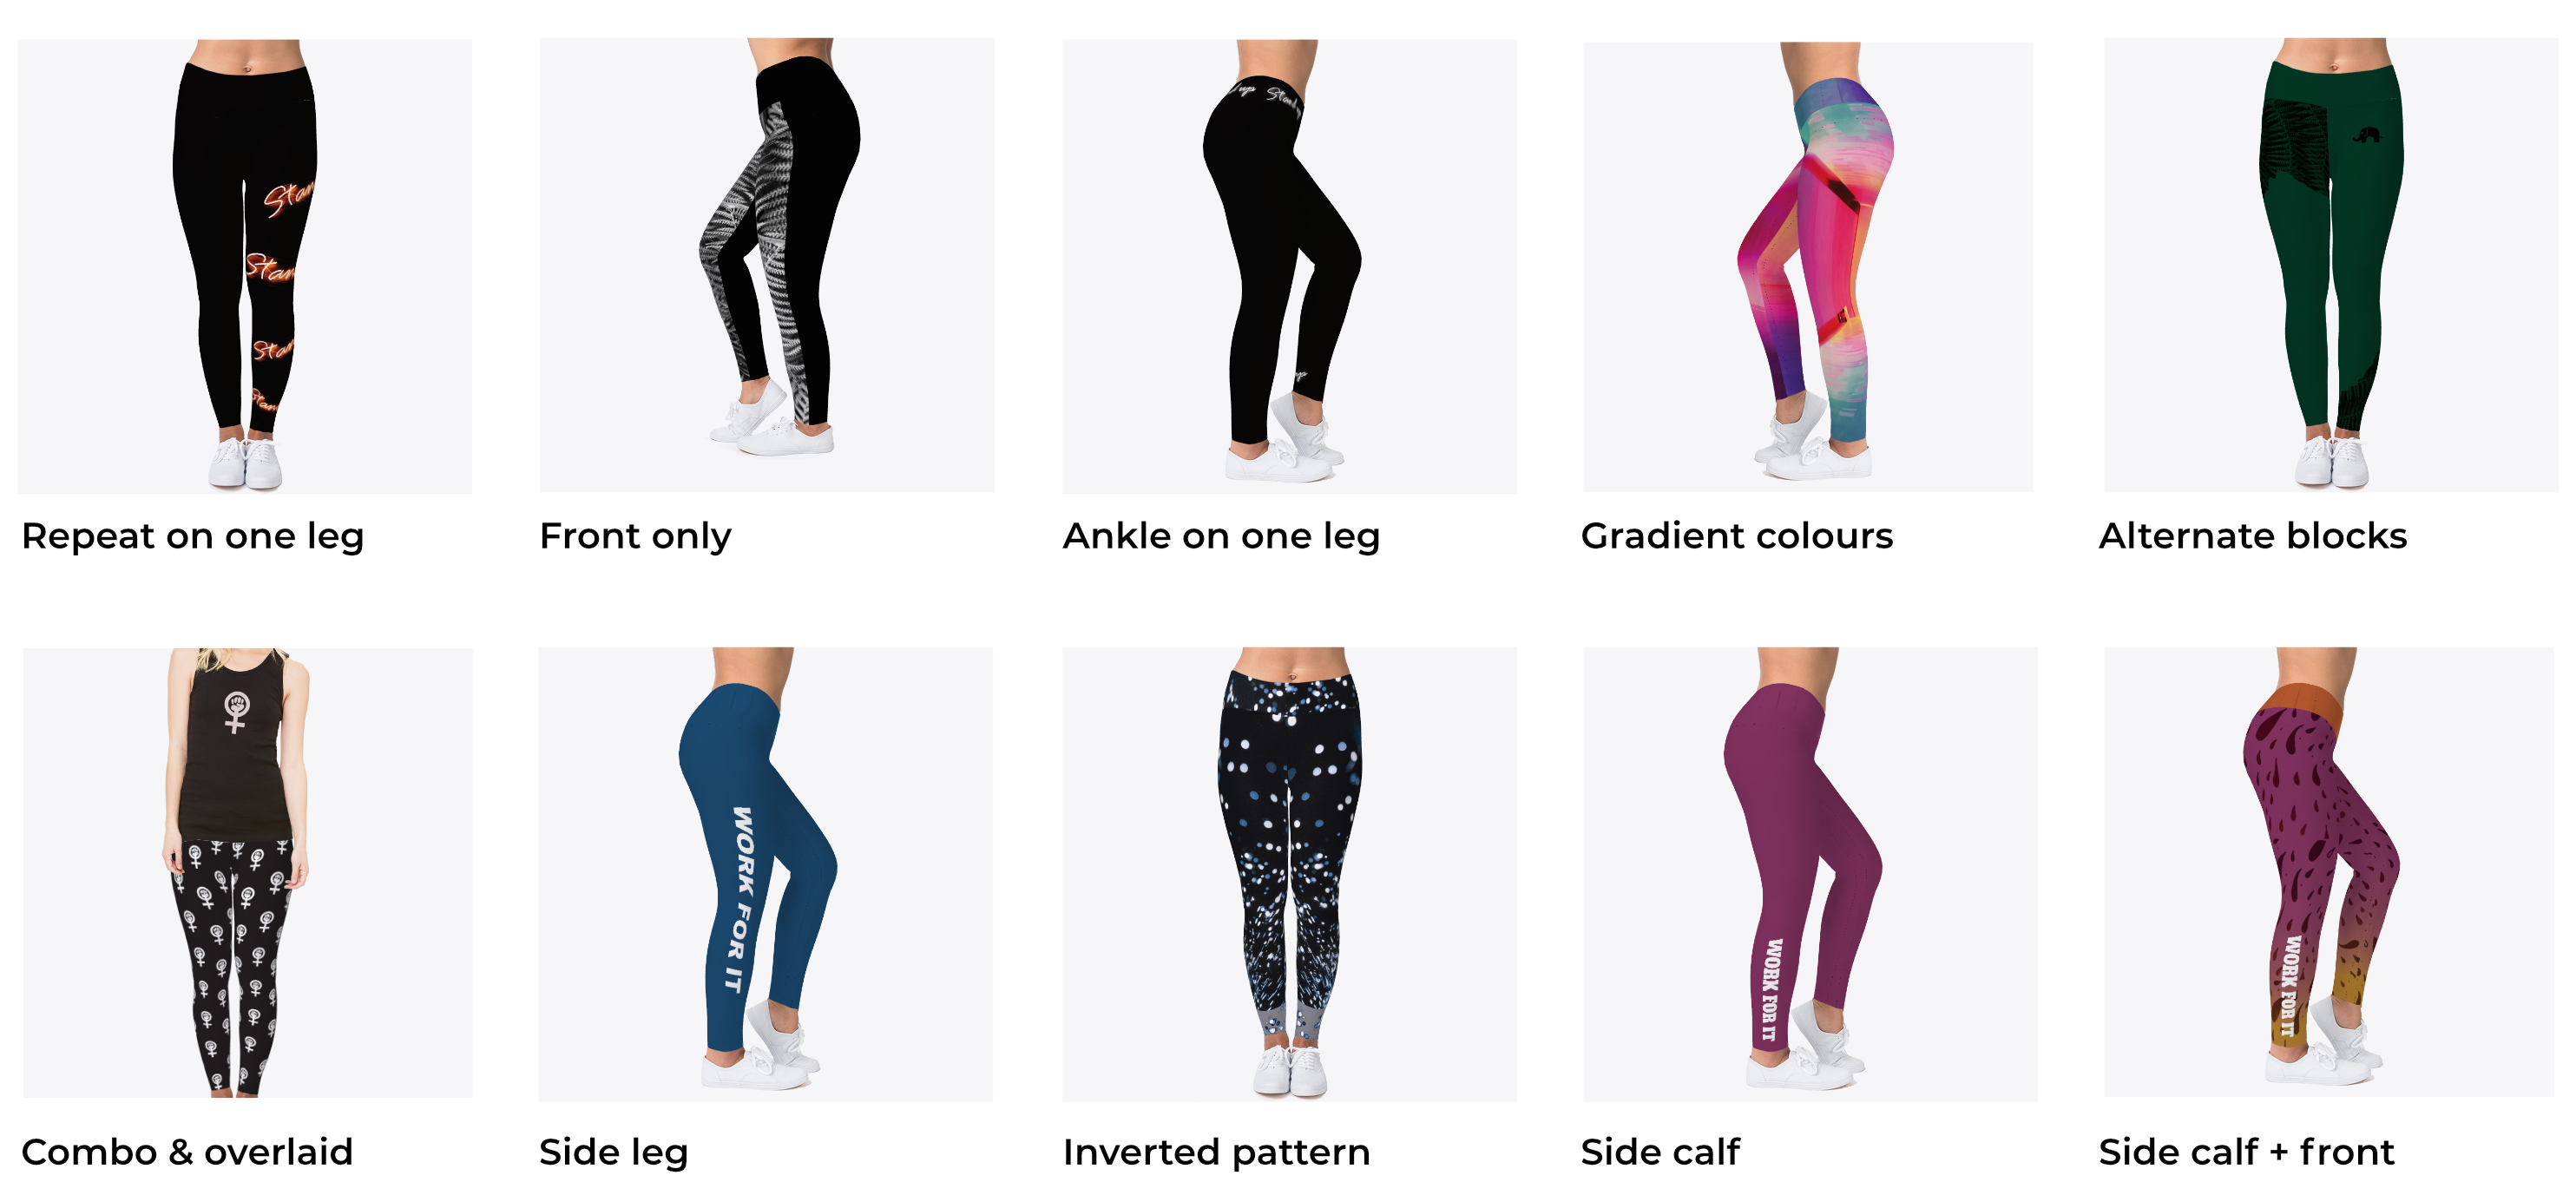 78ee7ed369fc0 Get top quality & high profit margins with Teespring's new leggings ...